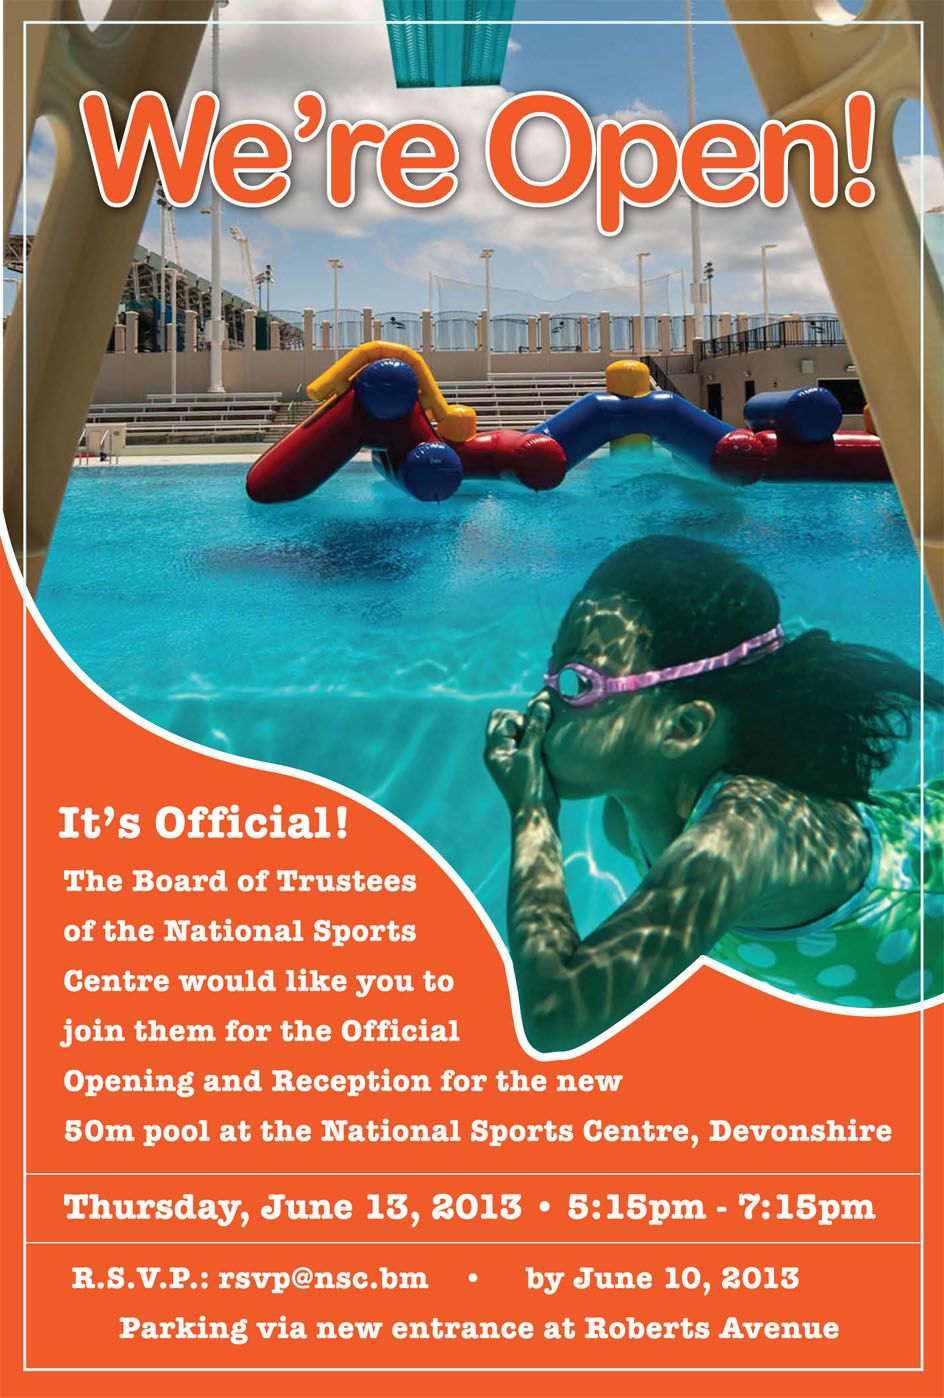 Invitation design for National Sports Centre official pool